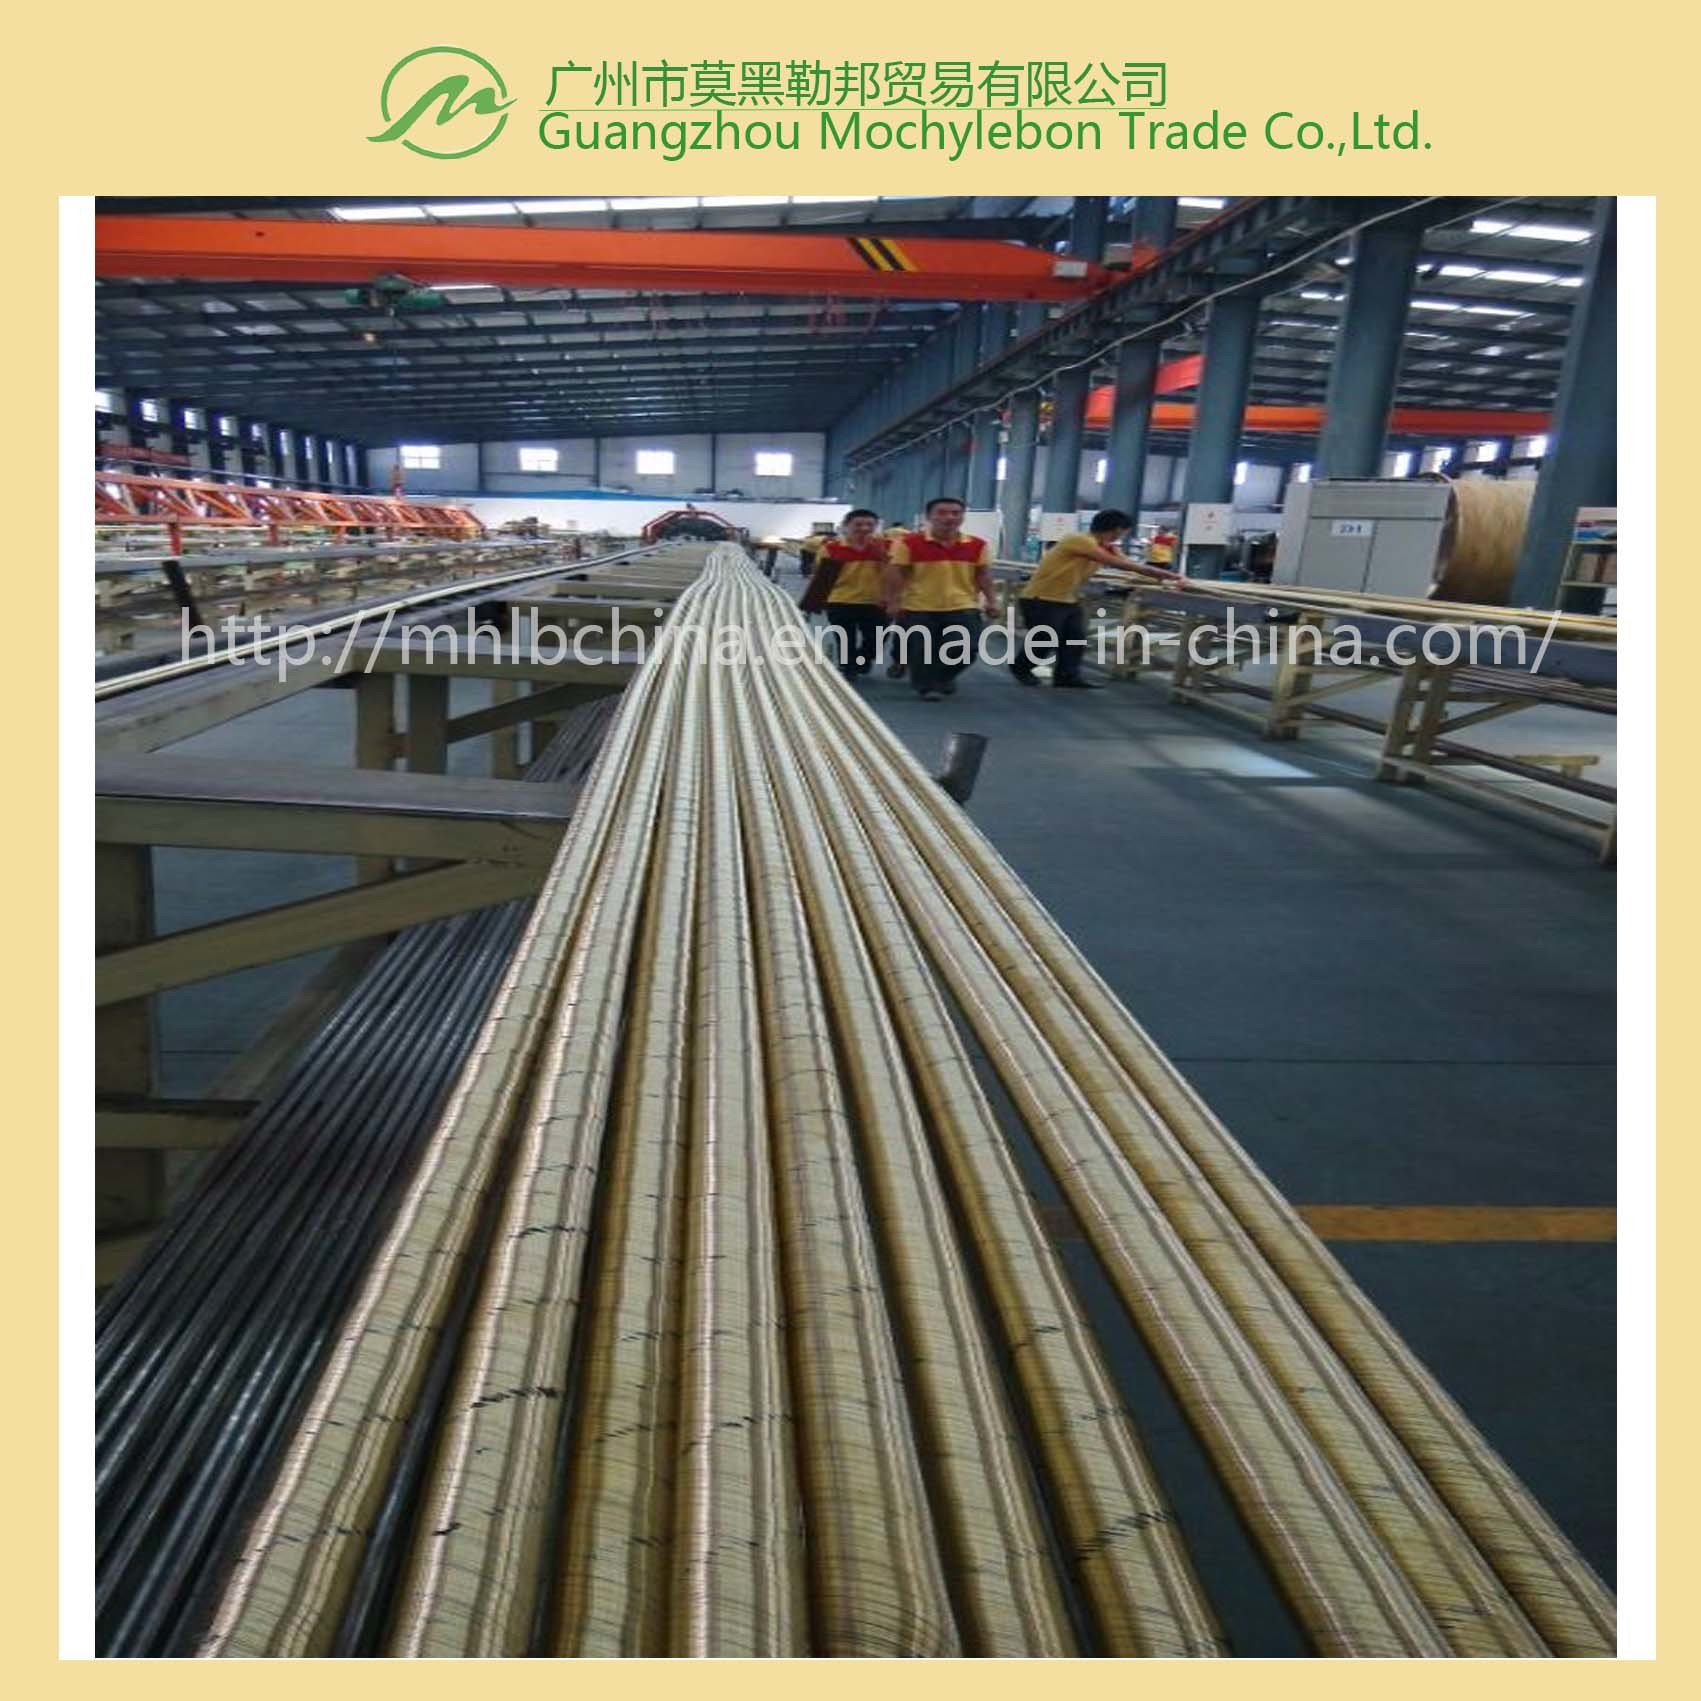 Steel Wire Spiral Hydraulic Hose (EN856 4SH-1-1/2) pictures & photos